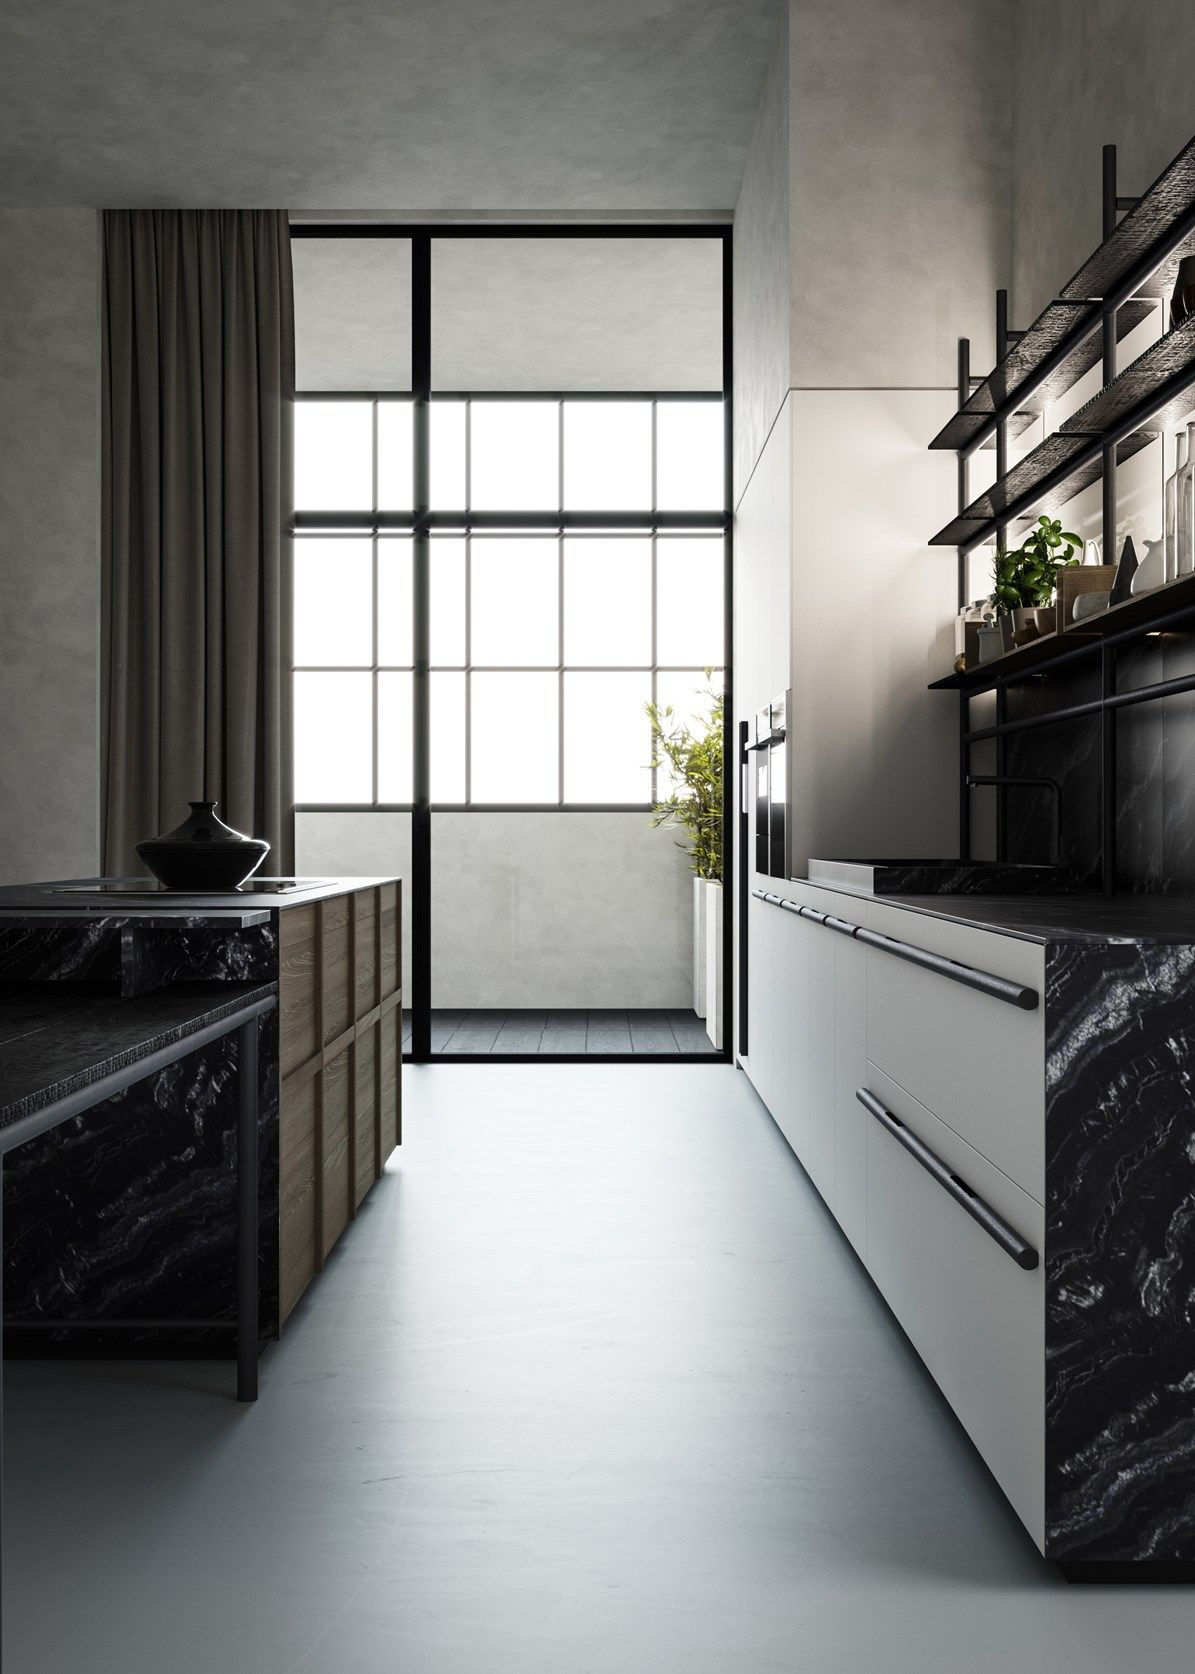 Kitchen inspired on ancient Japanese tradition